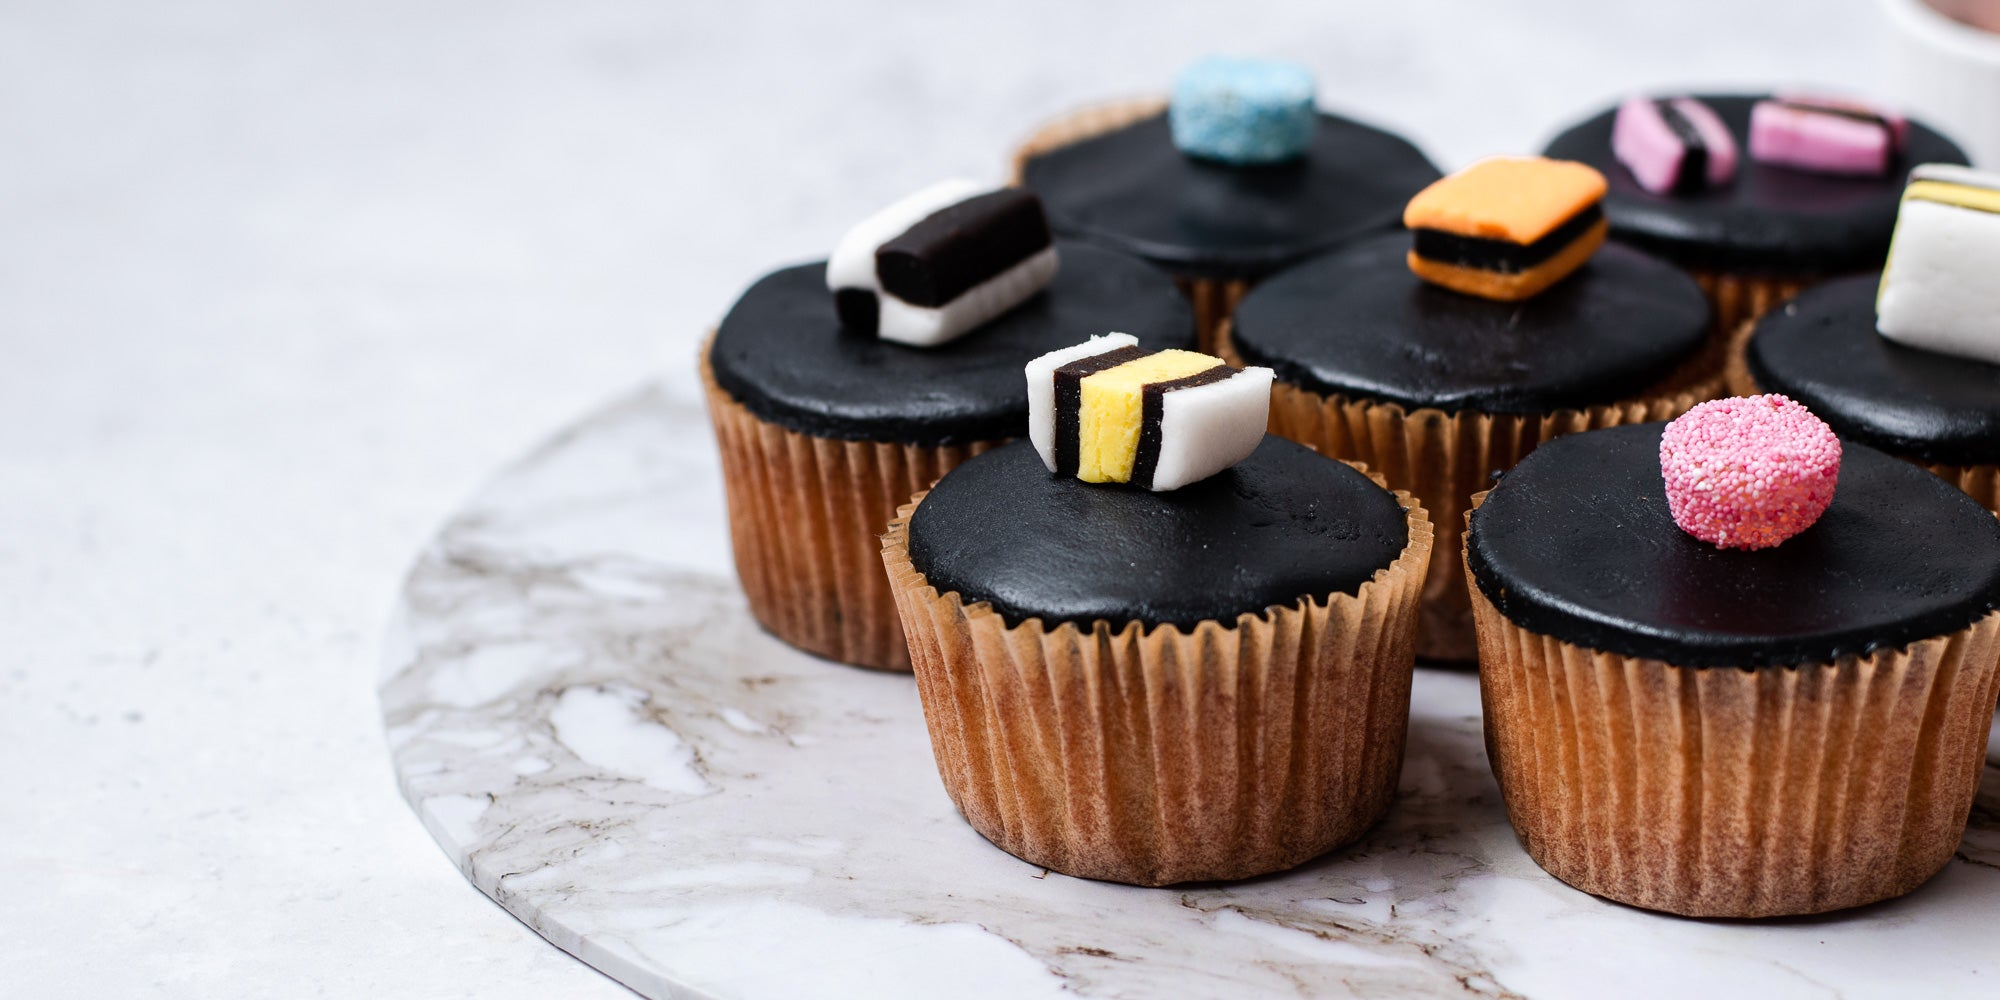 Cupcakes in brown cases, black fondant, topped with liquorice allsorts